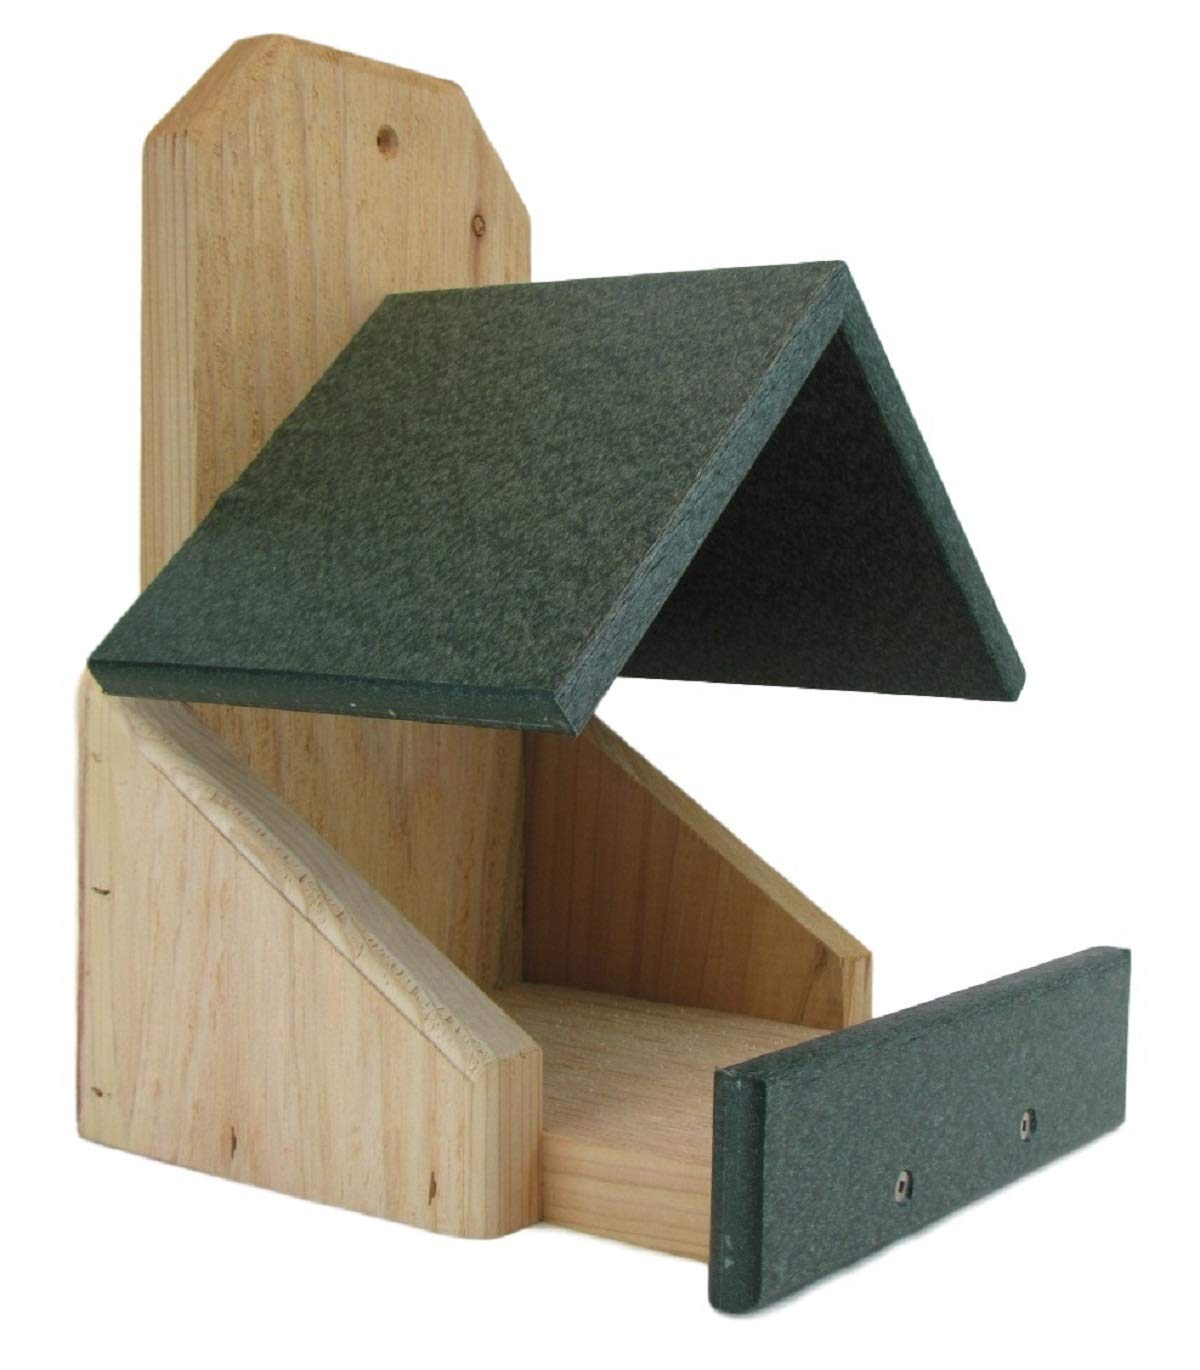 JCs Wildlife Cedar Robin Roost Birdhouse with Recycled Poly Lumber Roof, Green